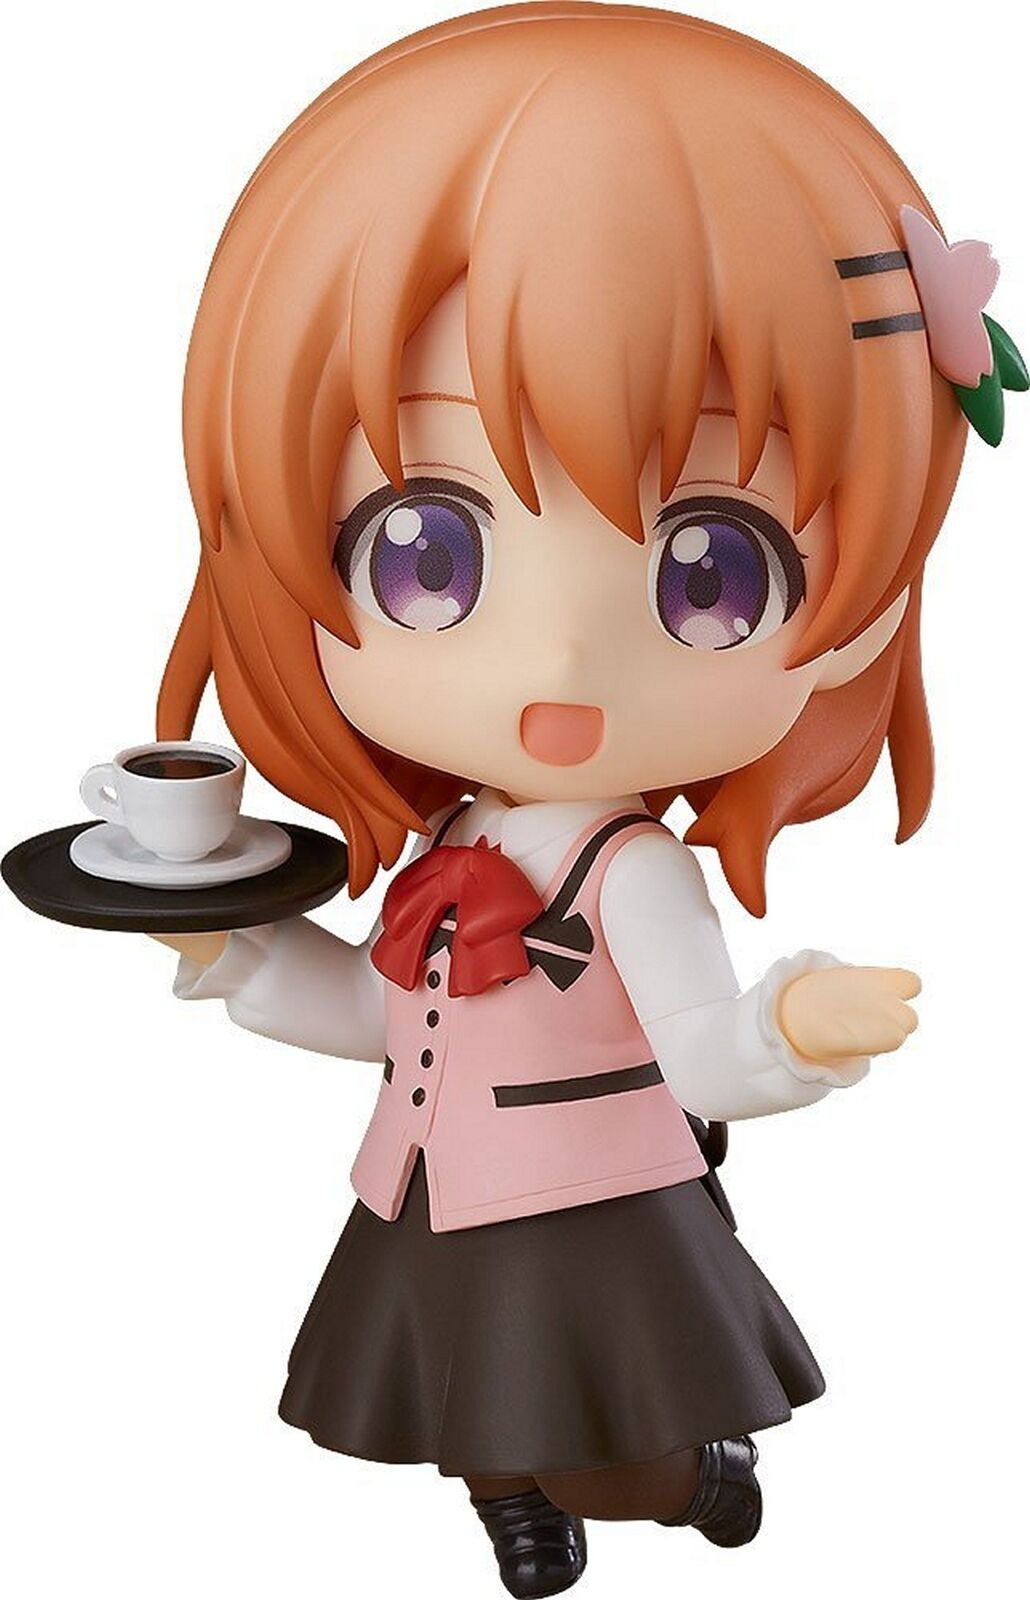 Good Smile Is the Order a Rabbit: Cocoa Nendoroid Action Figure